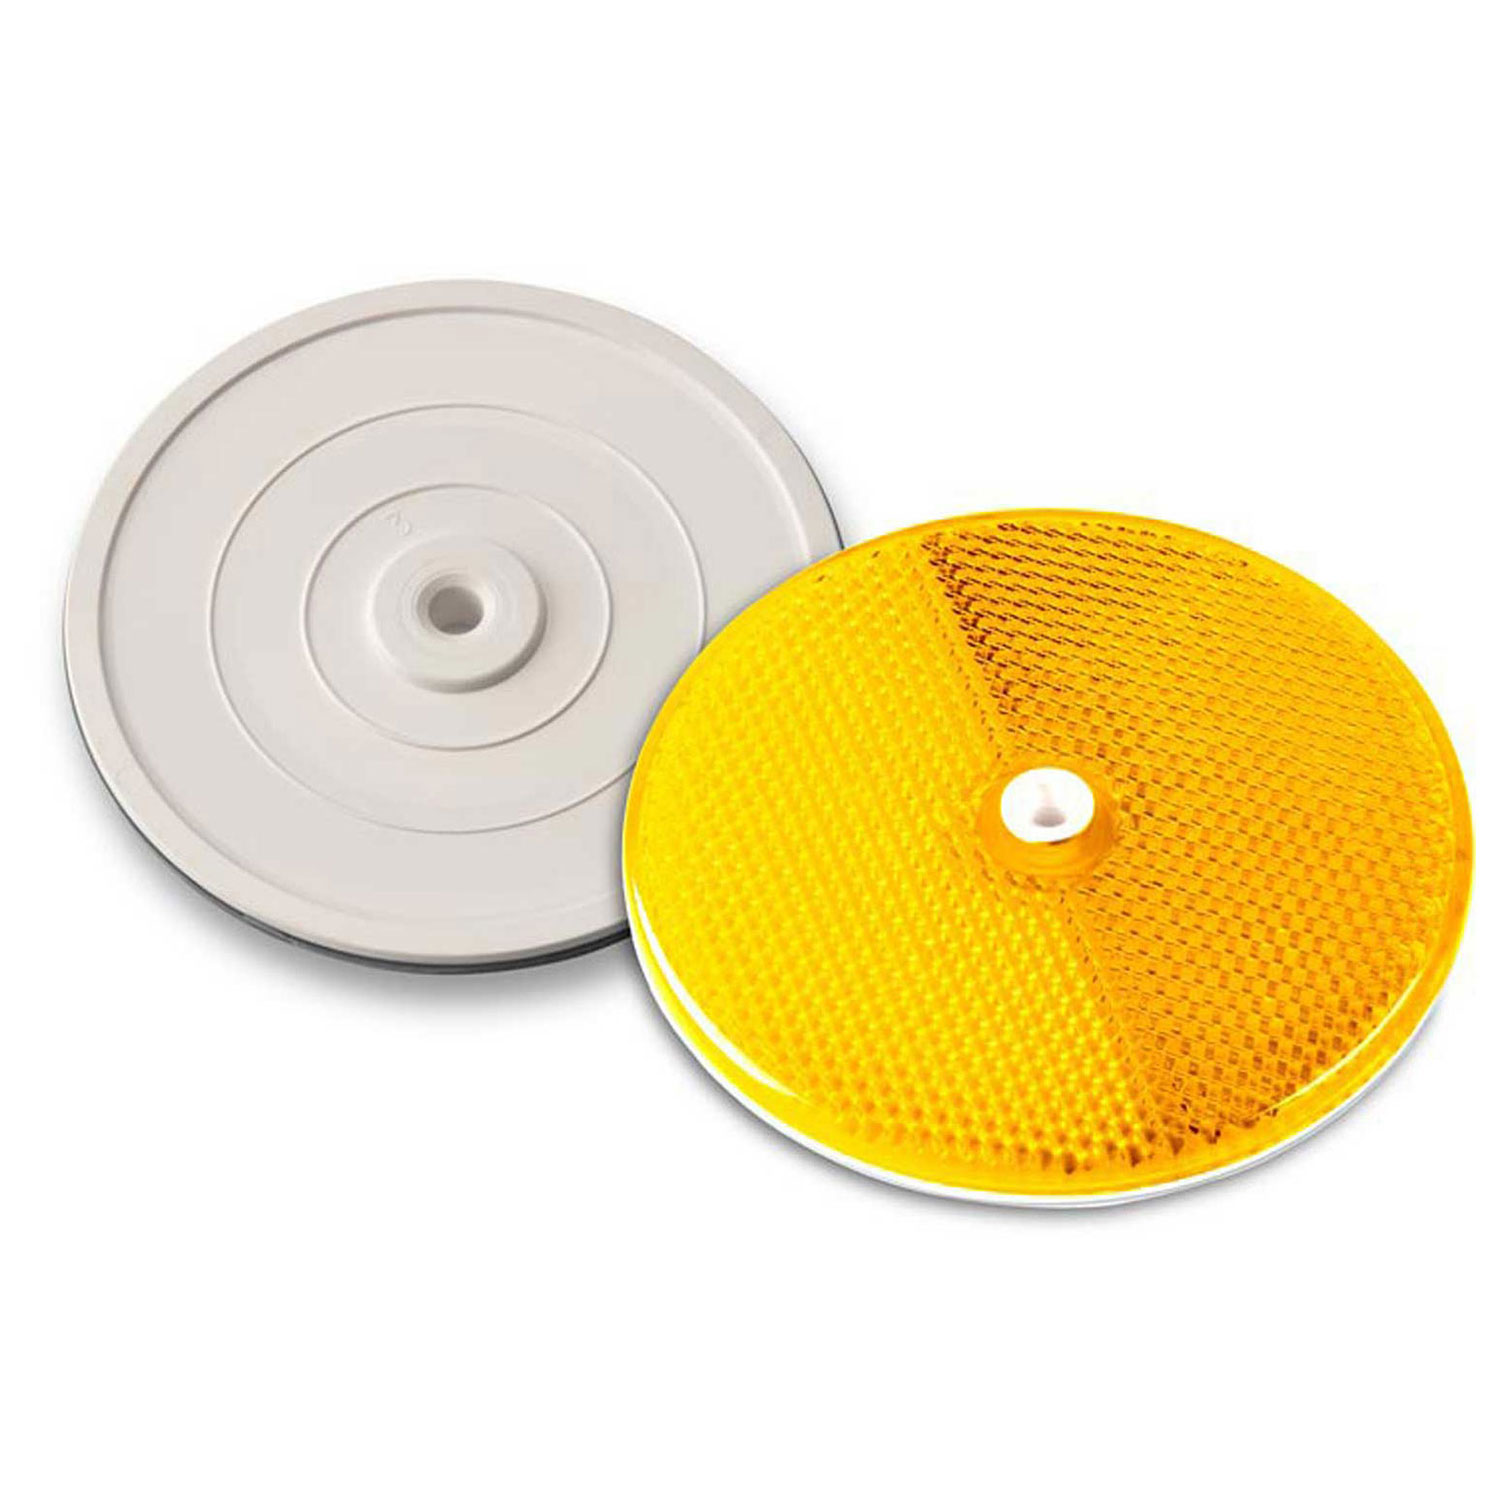 """3-1/4"""" Amber Reflector,Tapco, Centermount, 102222, Plastic Backplate, RT-90A, Lot of 1"""